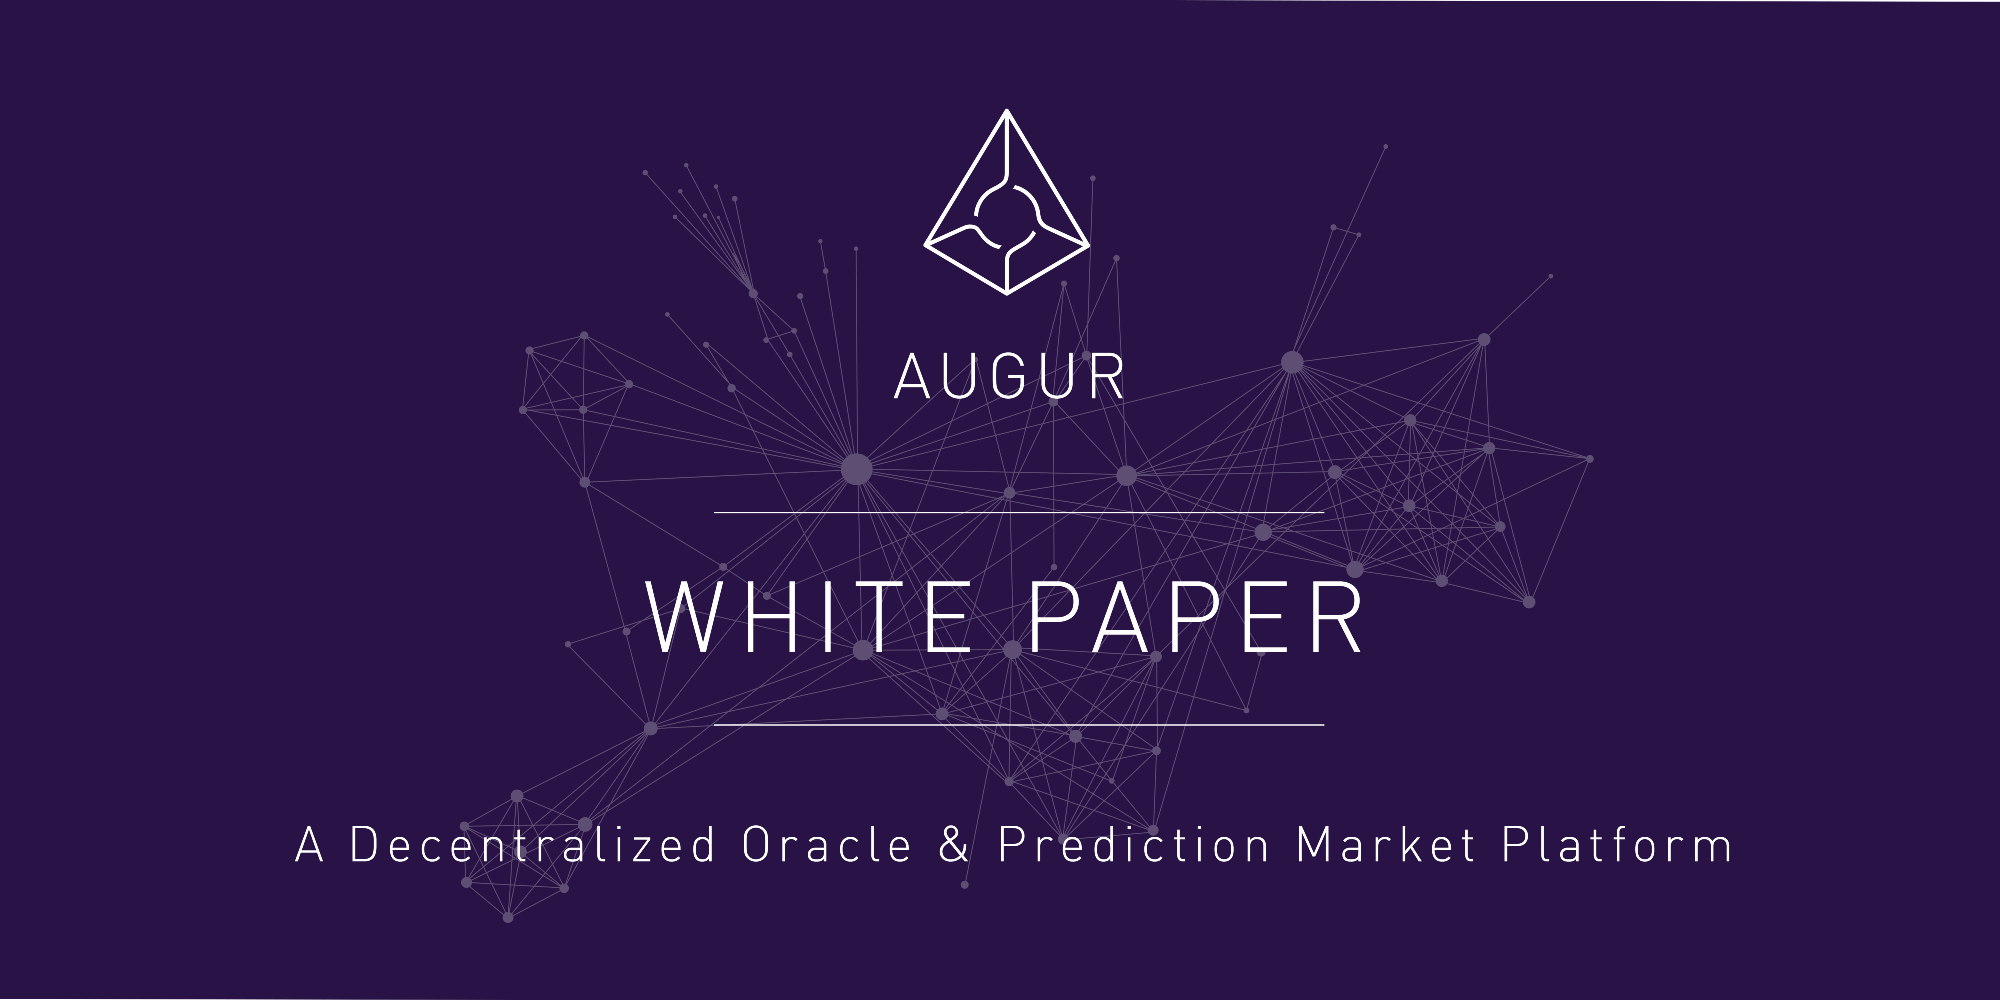 The Augur White Paper: A Decentralized Oracle And Prediction Market Platform